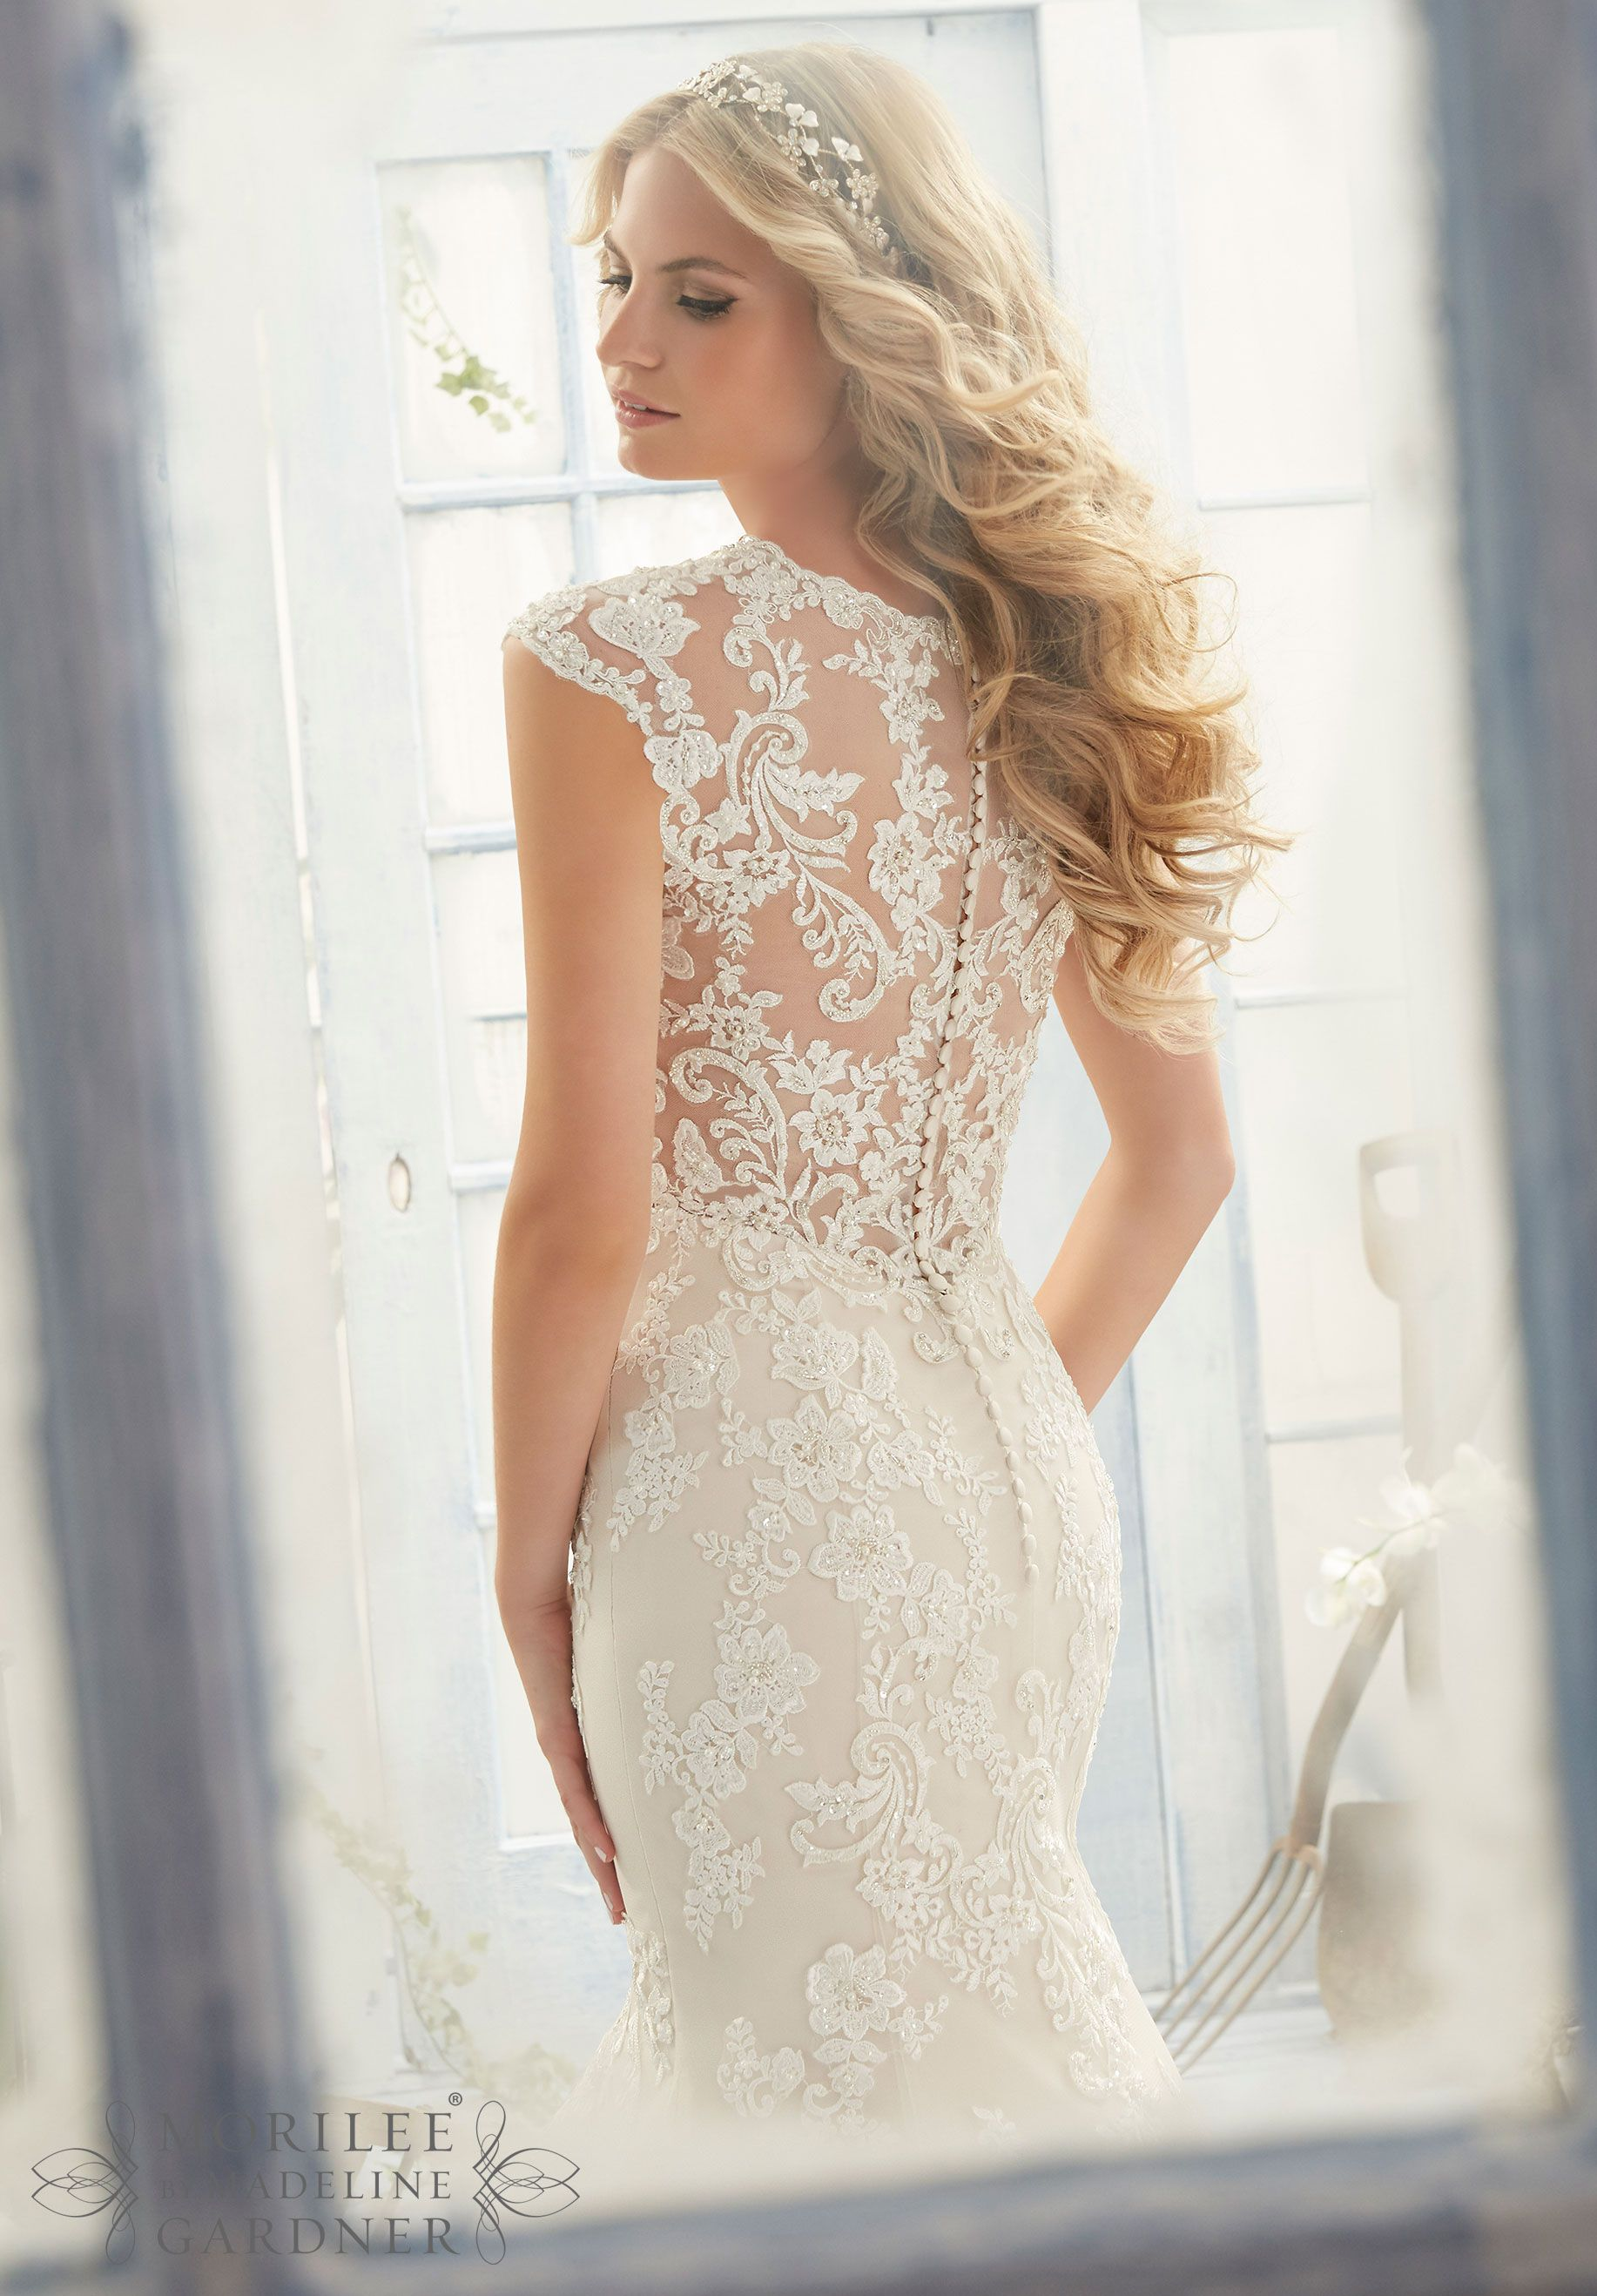 Trending Wedding Dress Crystal Beaded Embroidered Appliques and Scalloped Hemline on a Net Gown with Sheer